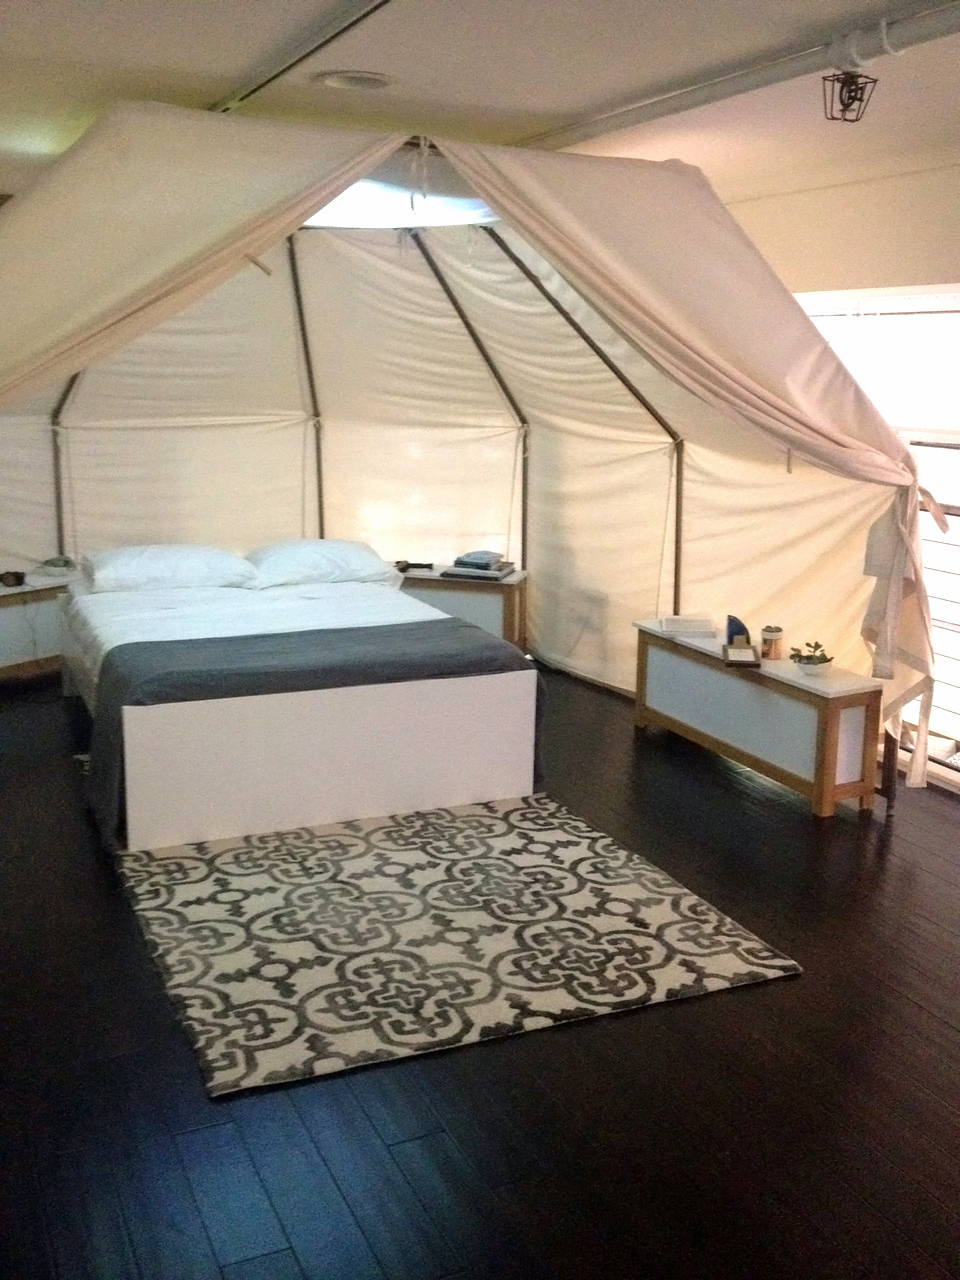 A Casper bed in a tented room.